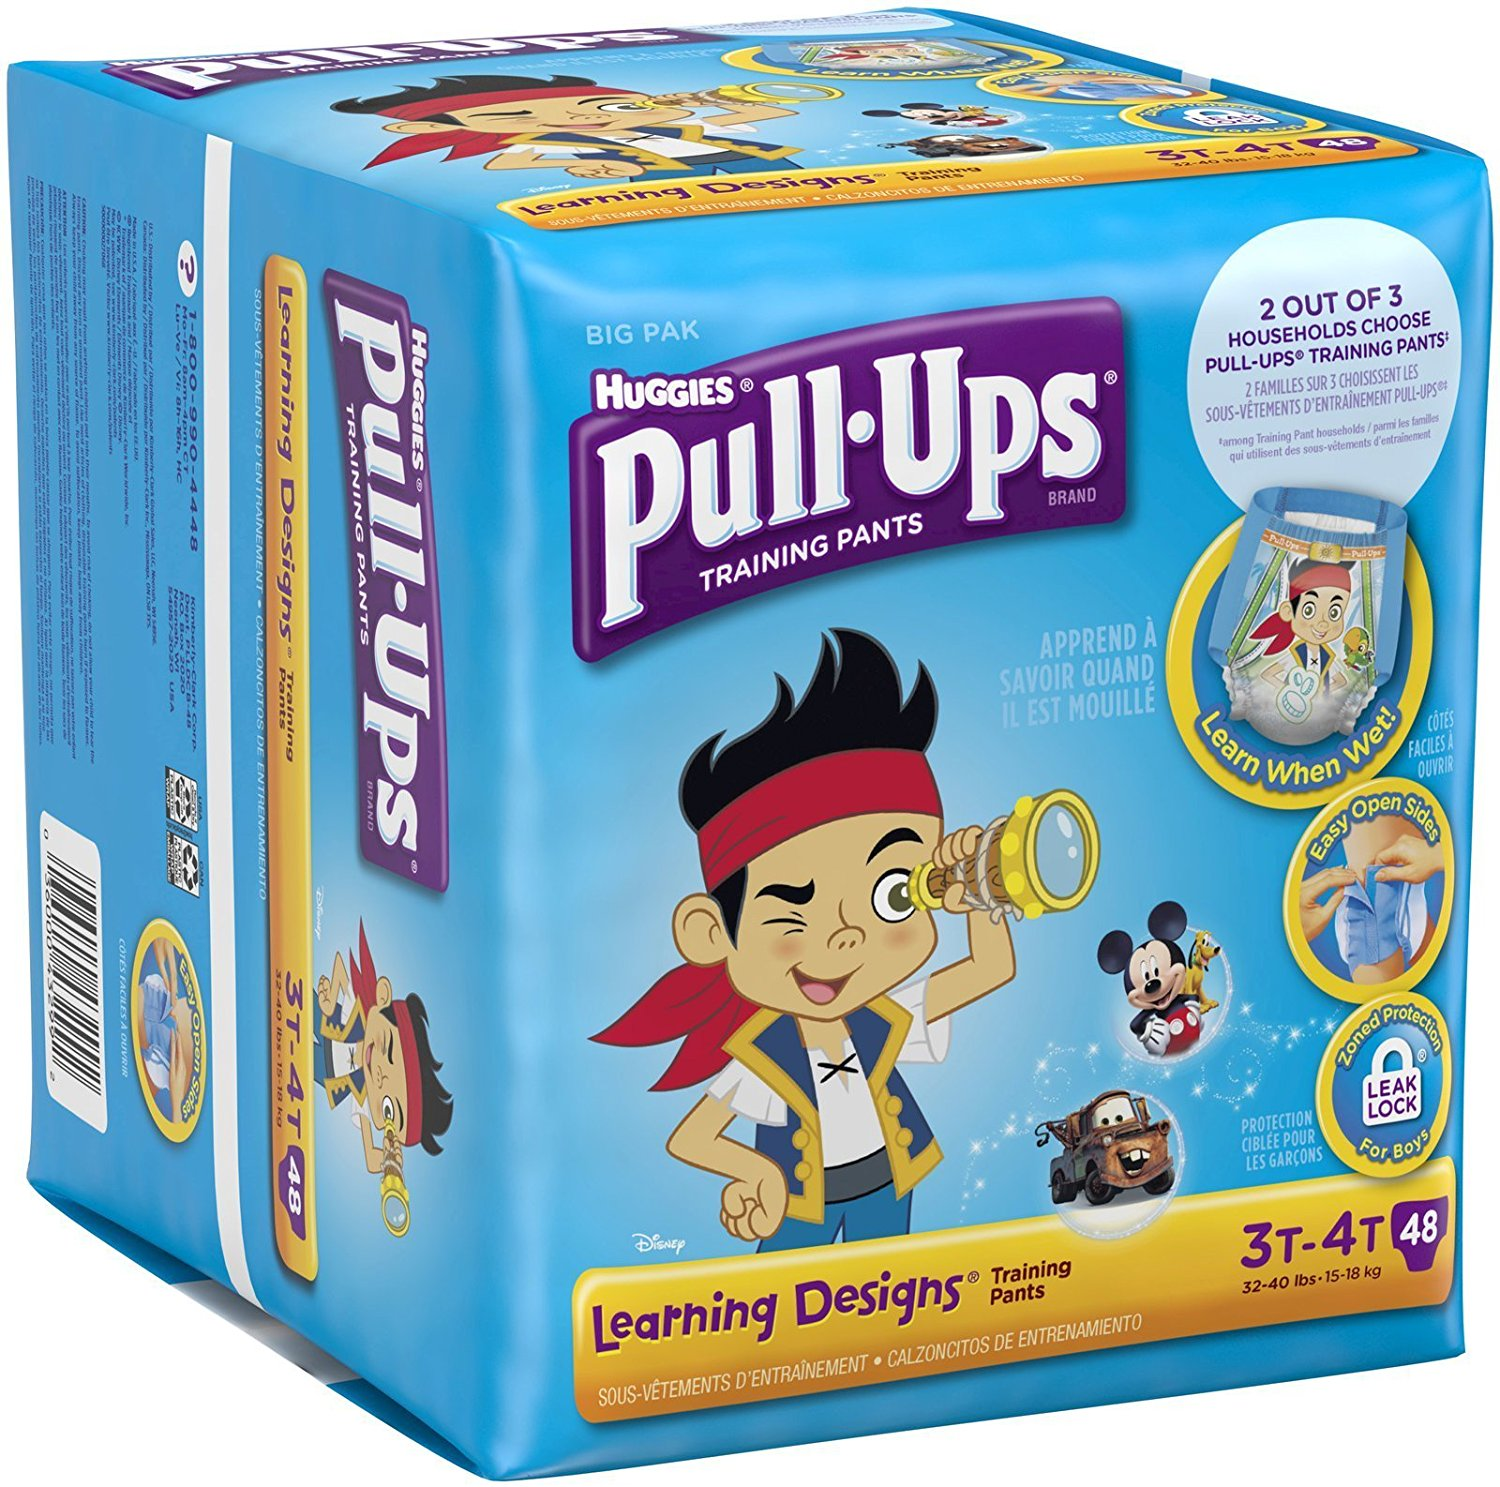 Pull-Ups Learning Designs Training Pants  3t-4t, Boy Jumbo Pack of 96